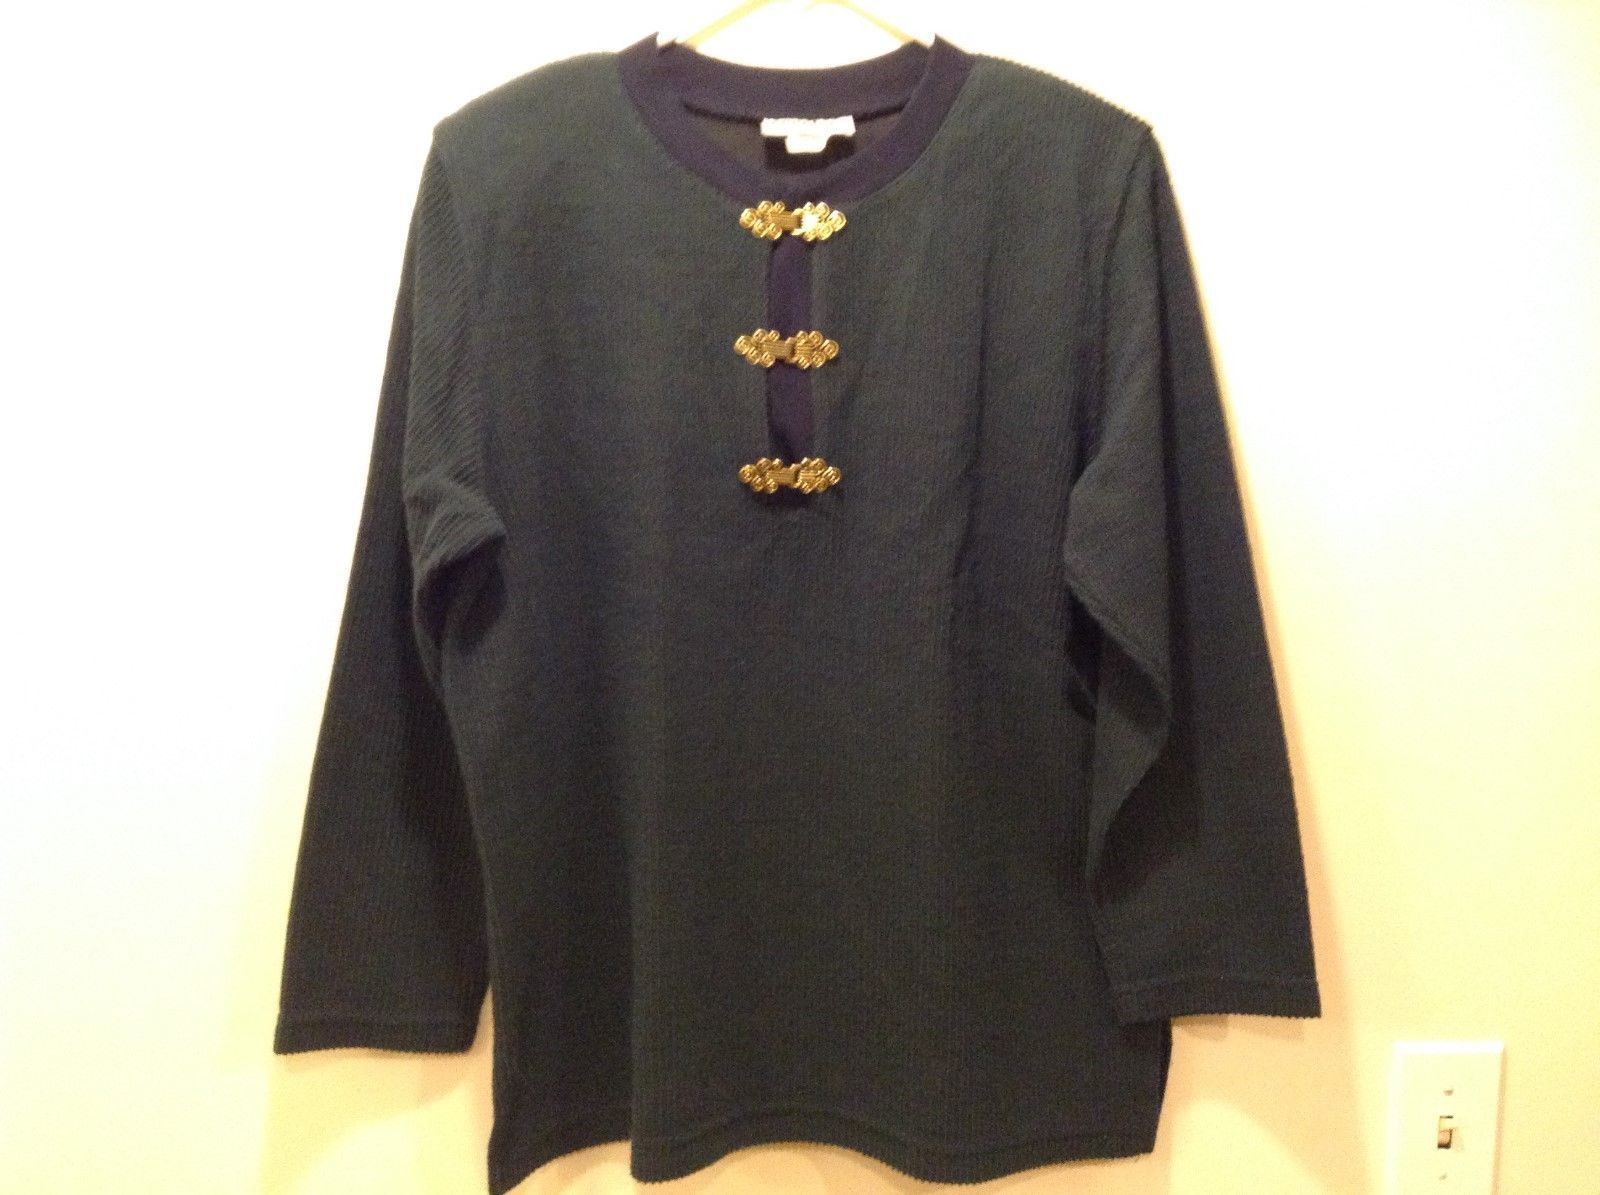 Eccobay Classic V-Neck Pullover Blue/Green Sweater w Gold Clasps Sz L